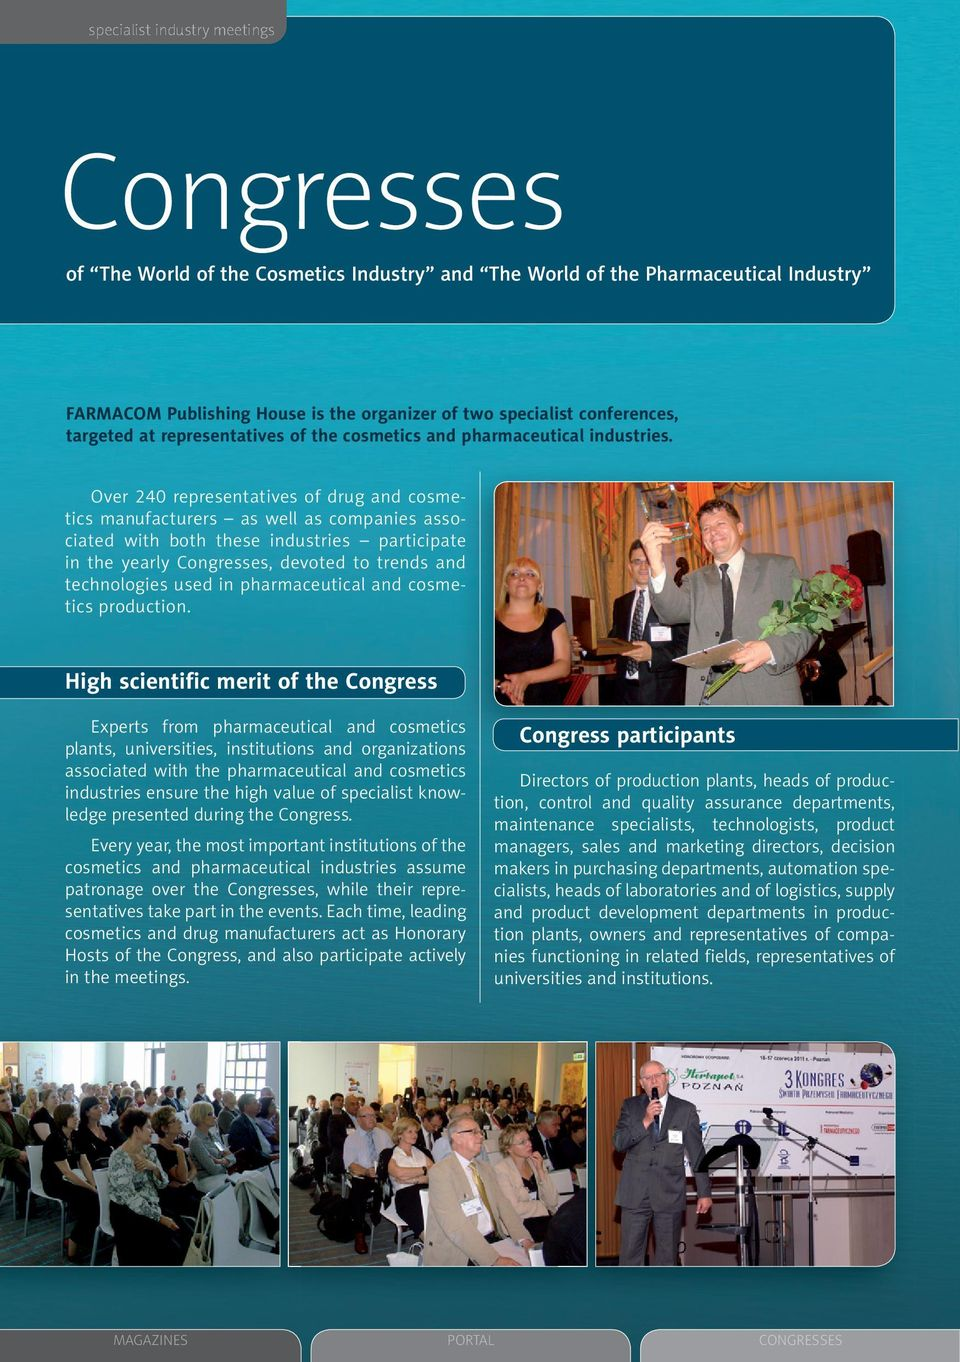 Over 240 representatives of drug and cosmetics manufacturers as well as companies associated with both these industries participate in the yearly Congresses, devoted to trends and technologies used